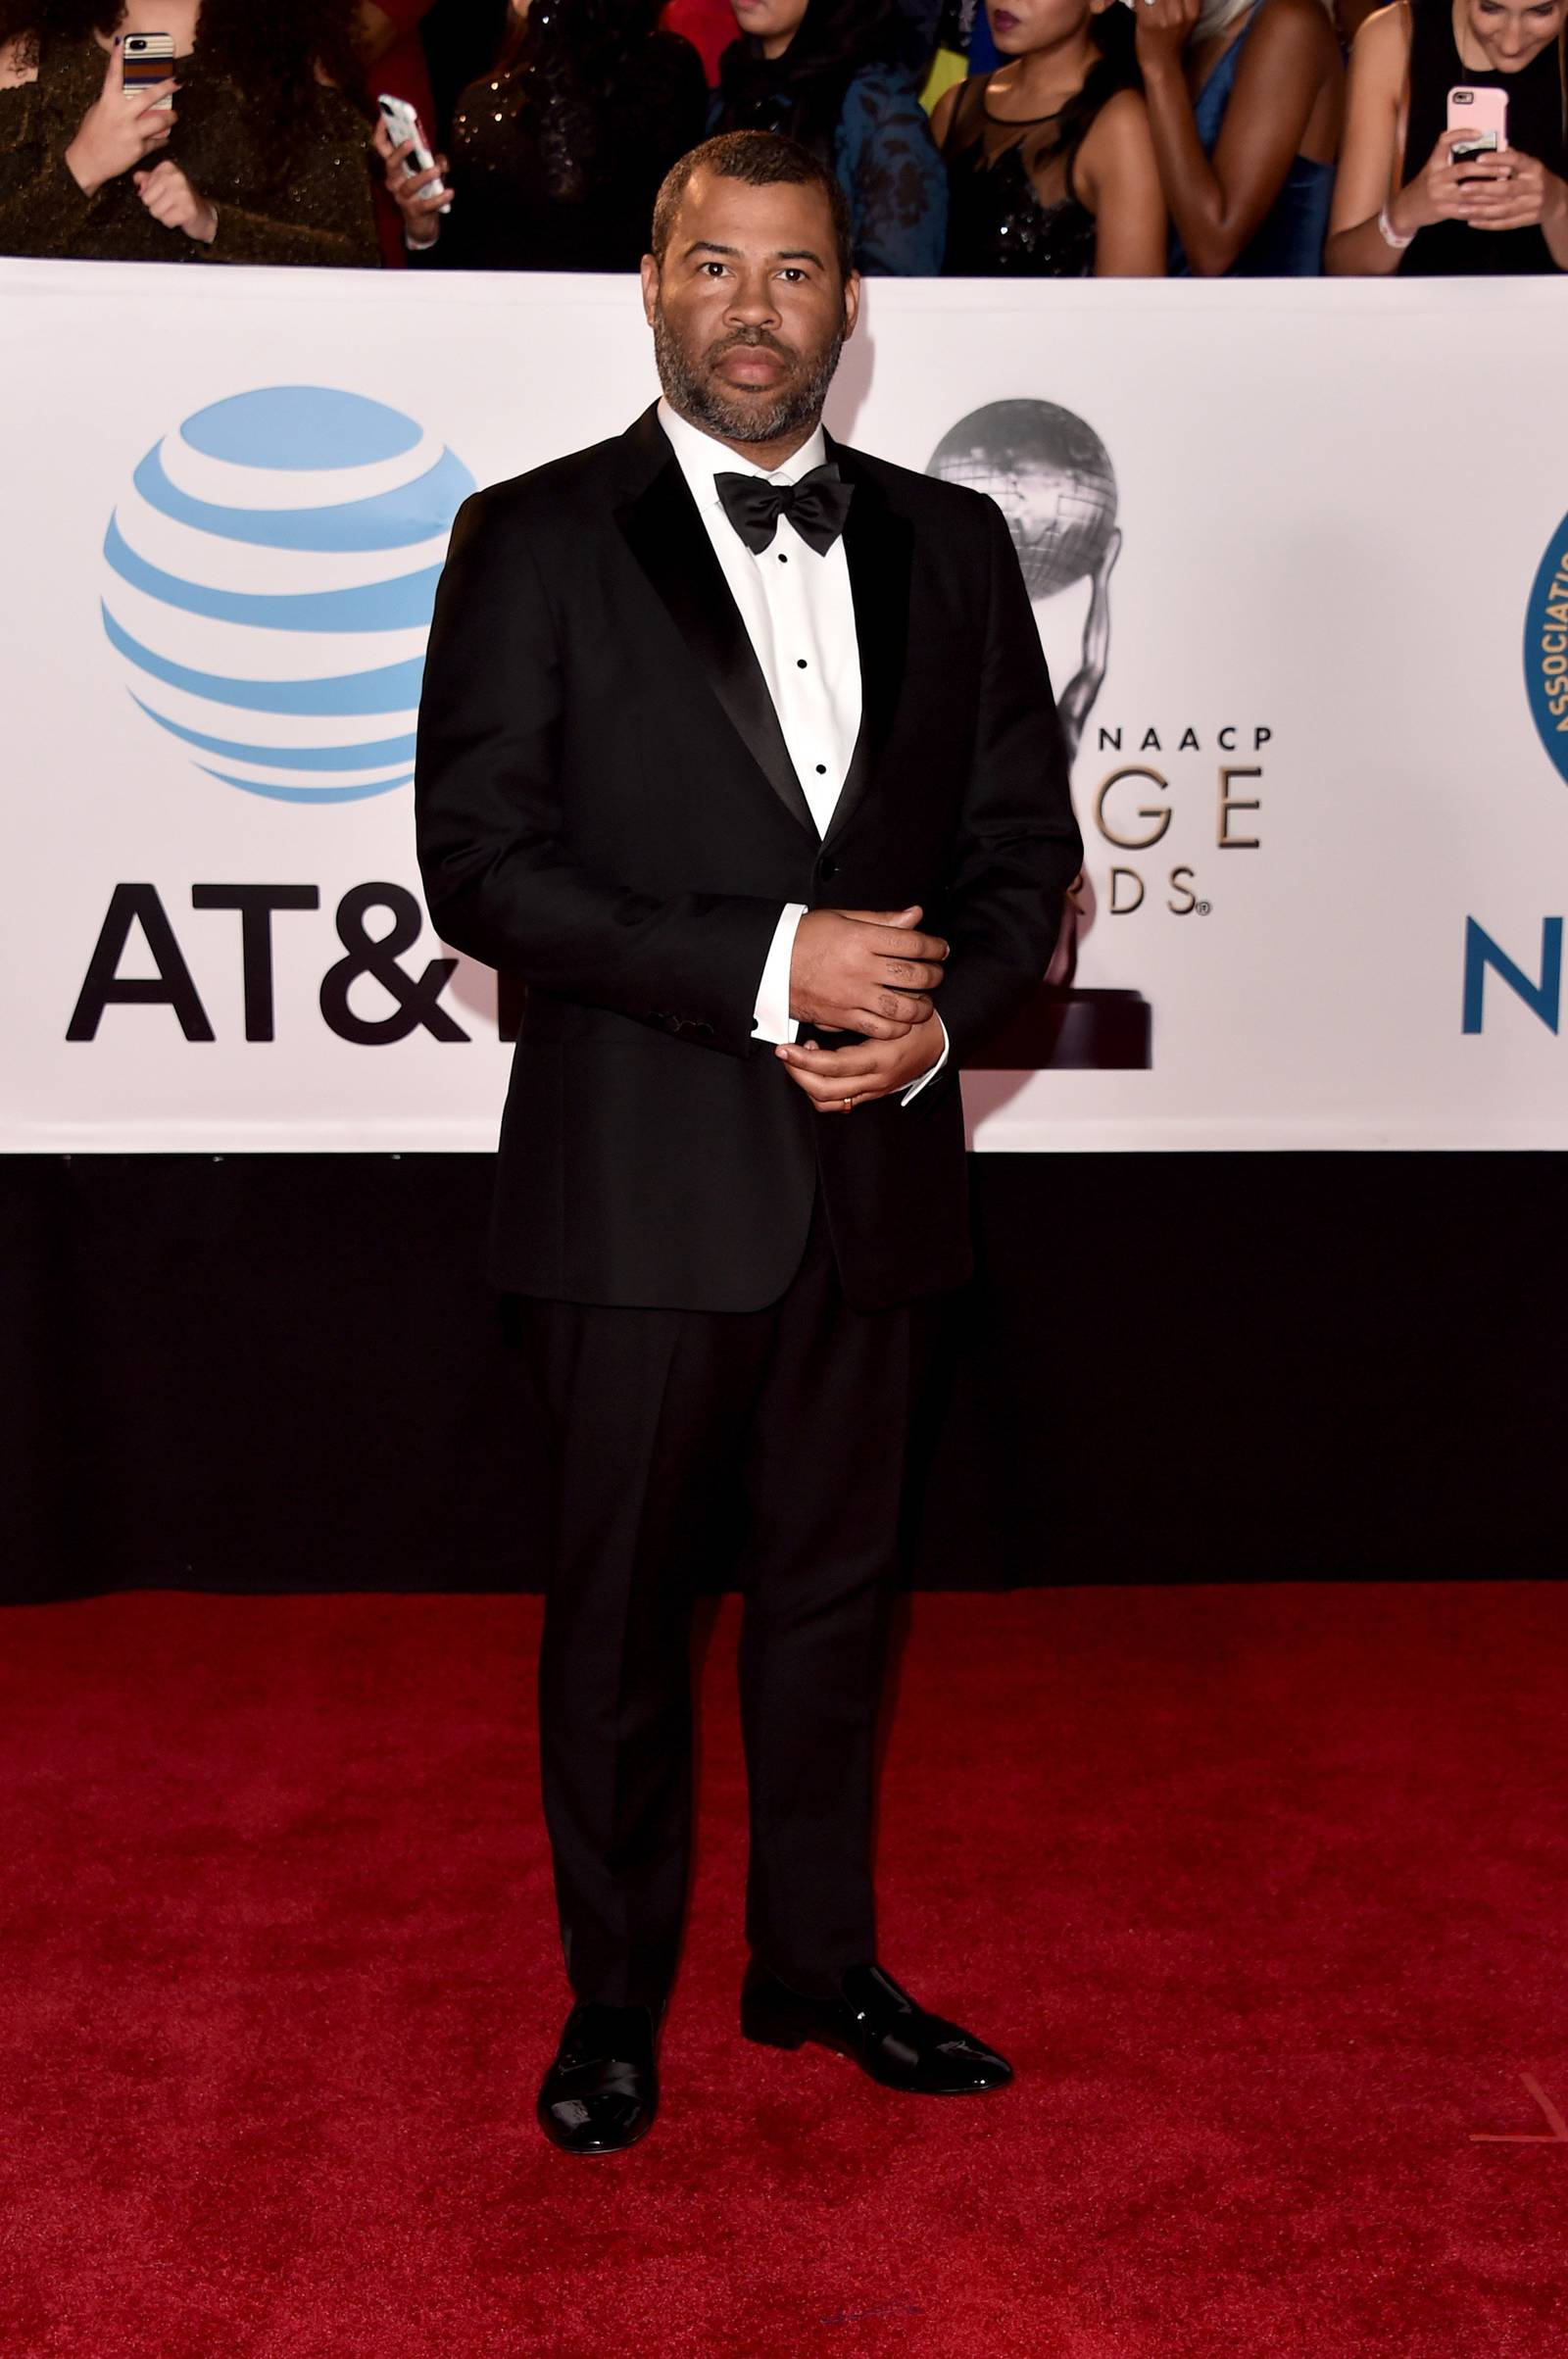 Jordan Peele (Photo by Alberto E. Rodriguez/Getty Images for NAACP )